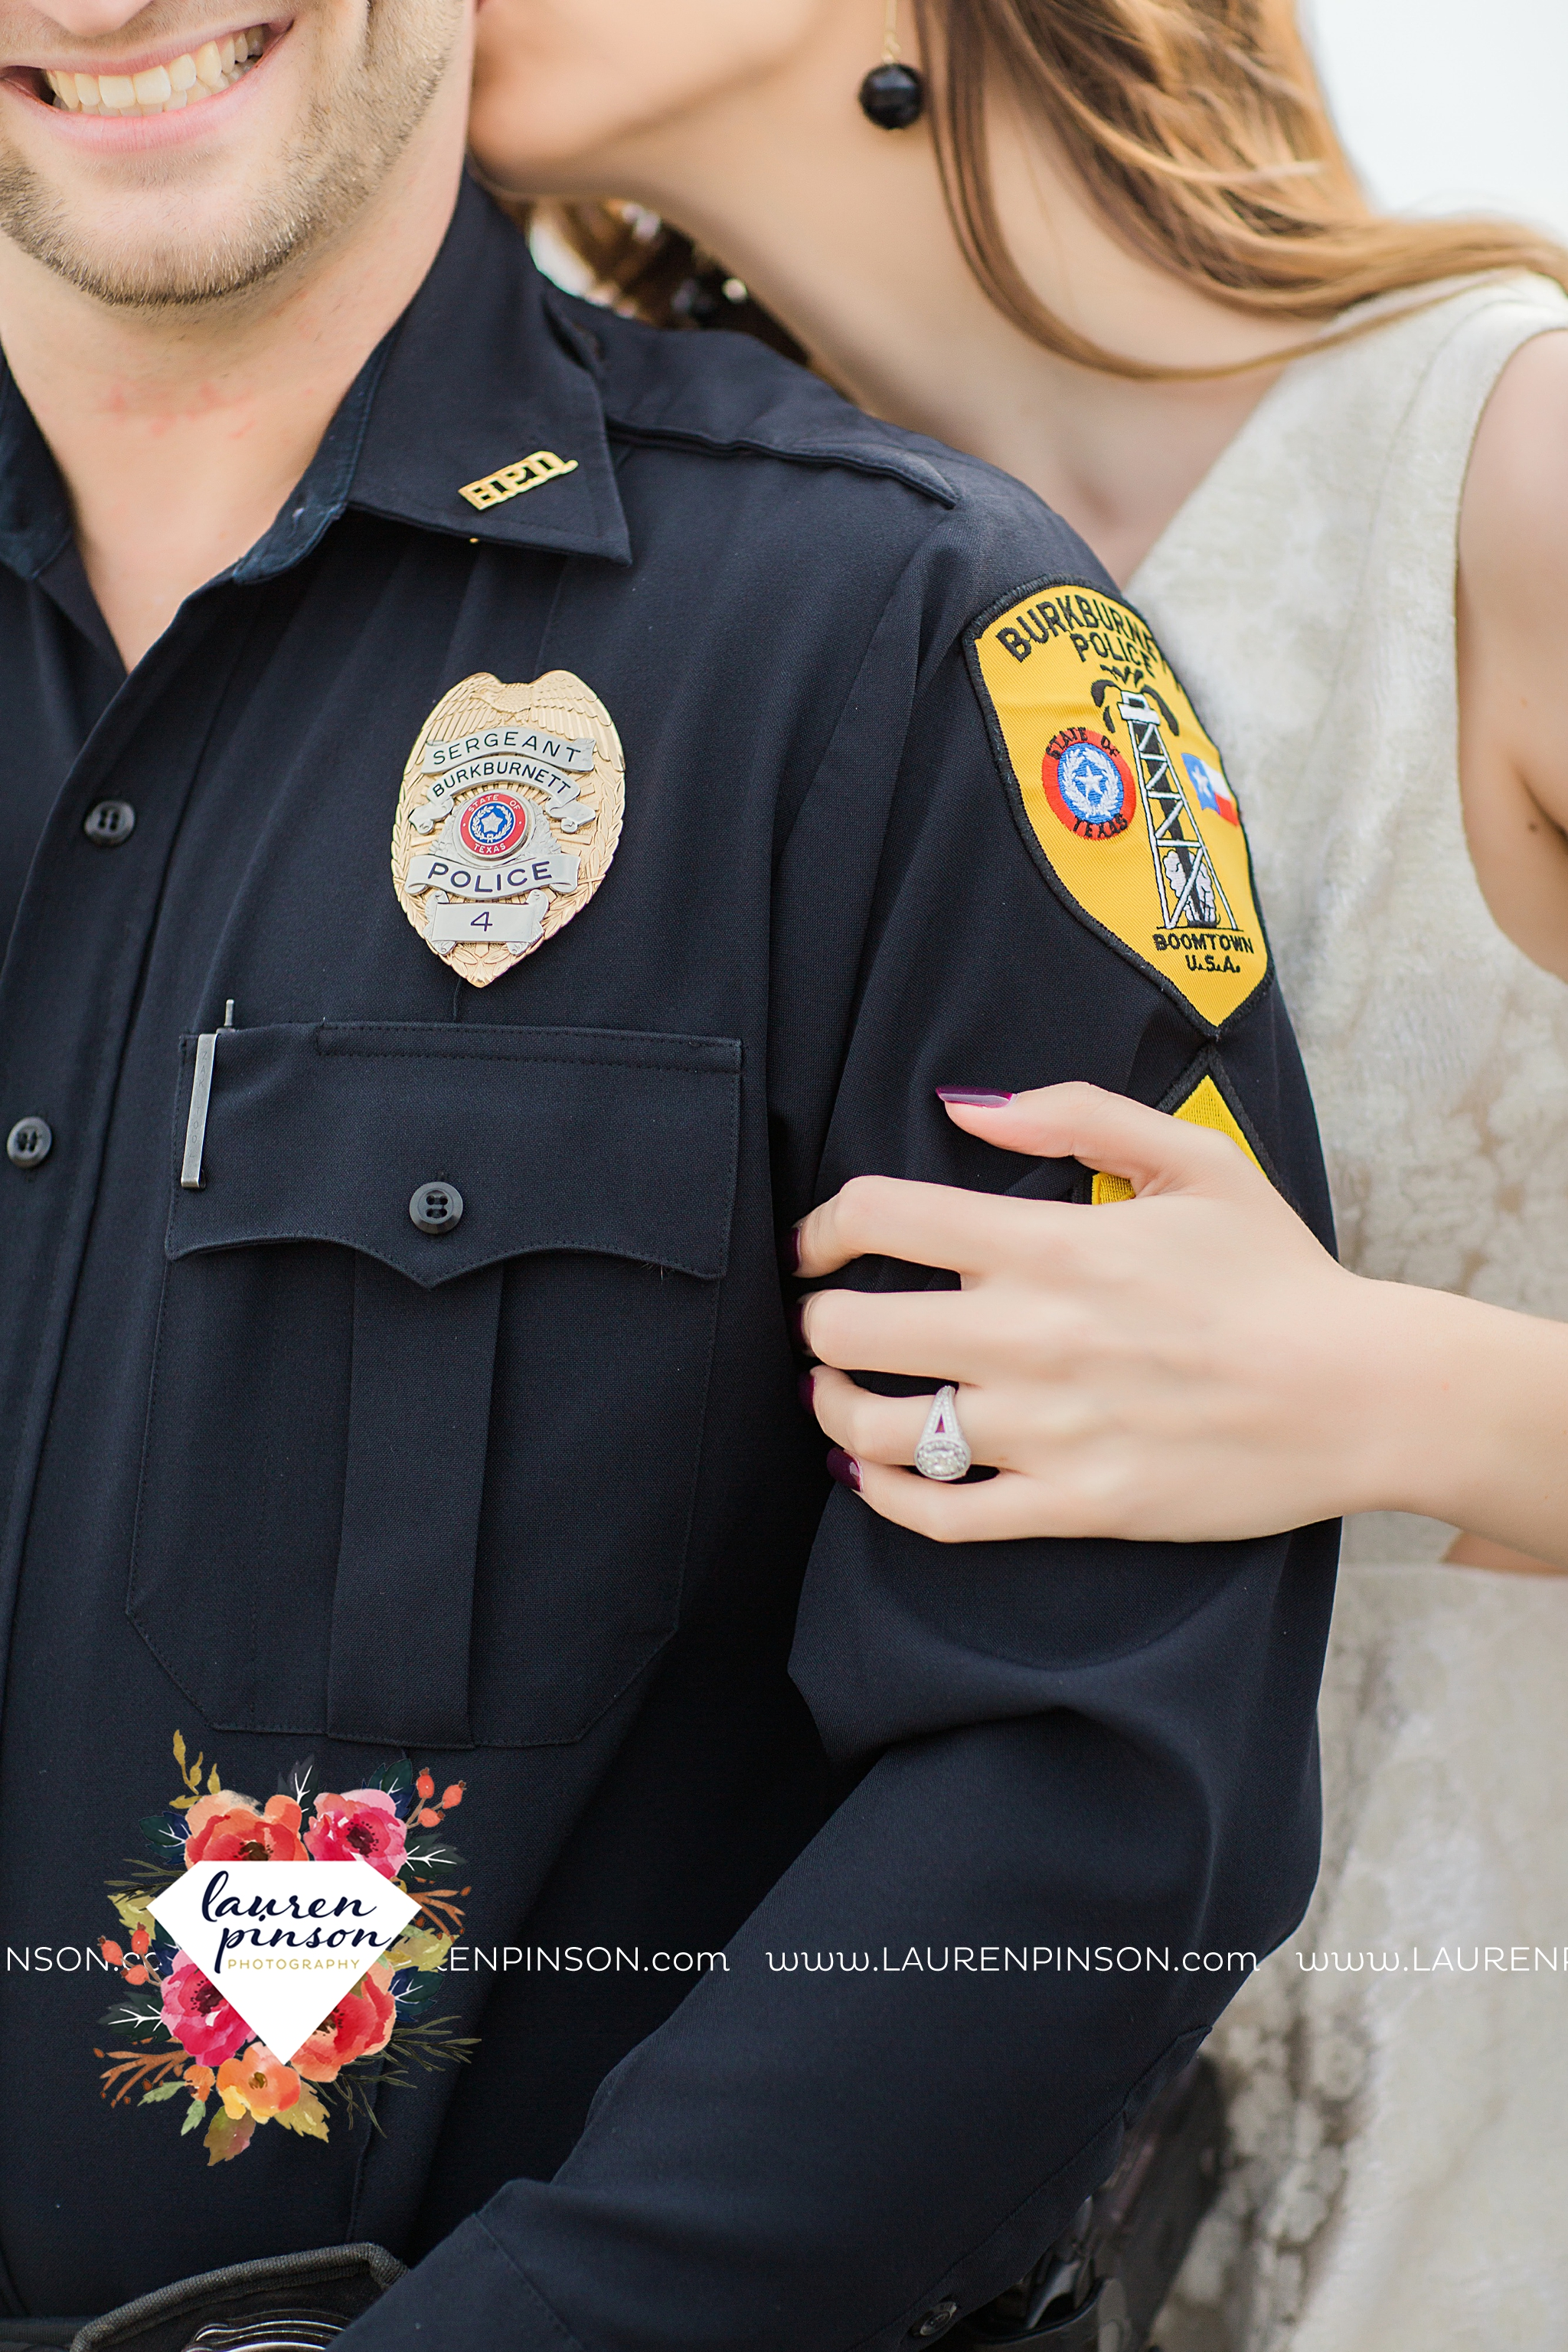 wichita-falls-texas-photographer-burkburnett-engagement-session-wichita-mountains-police-officer_4124.jpg